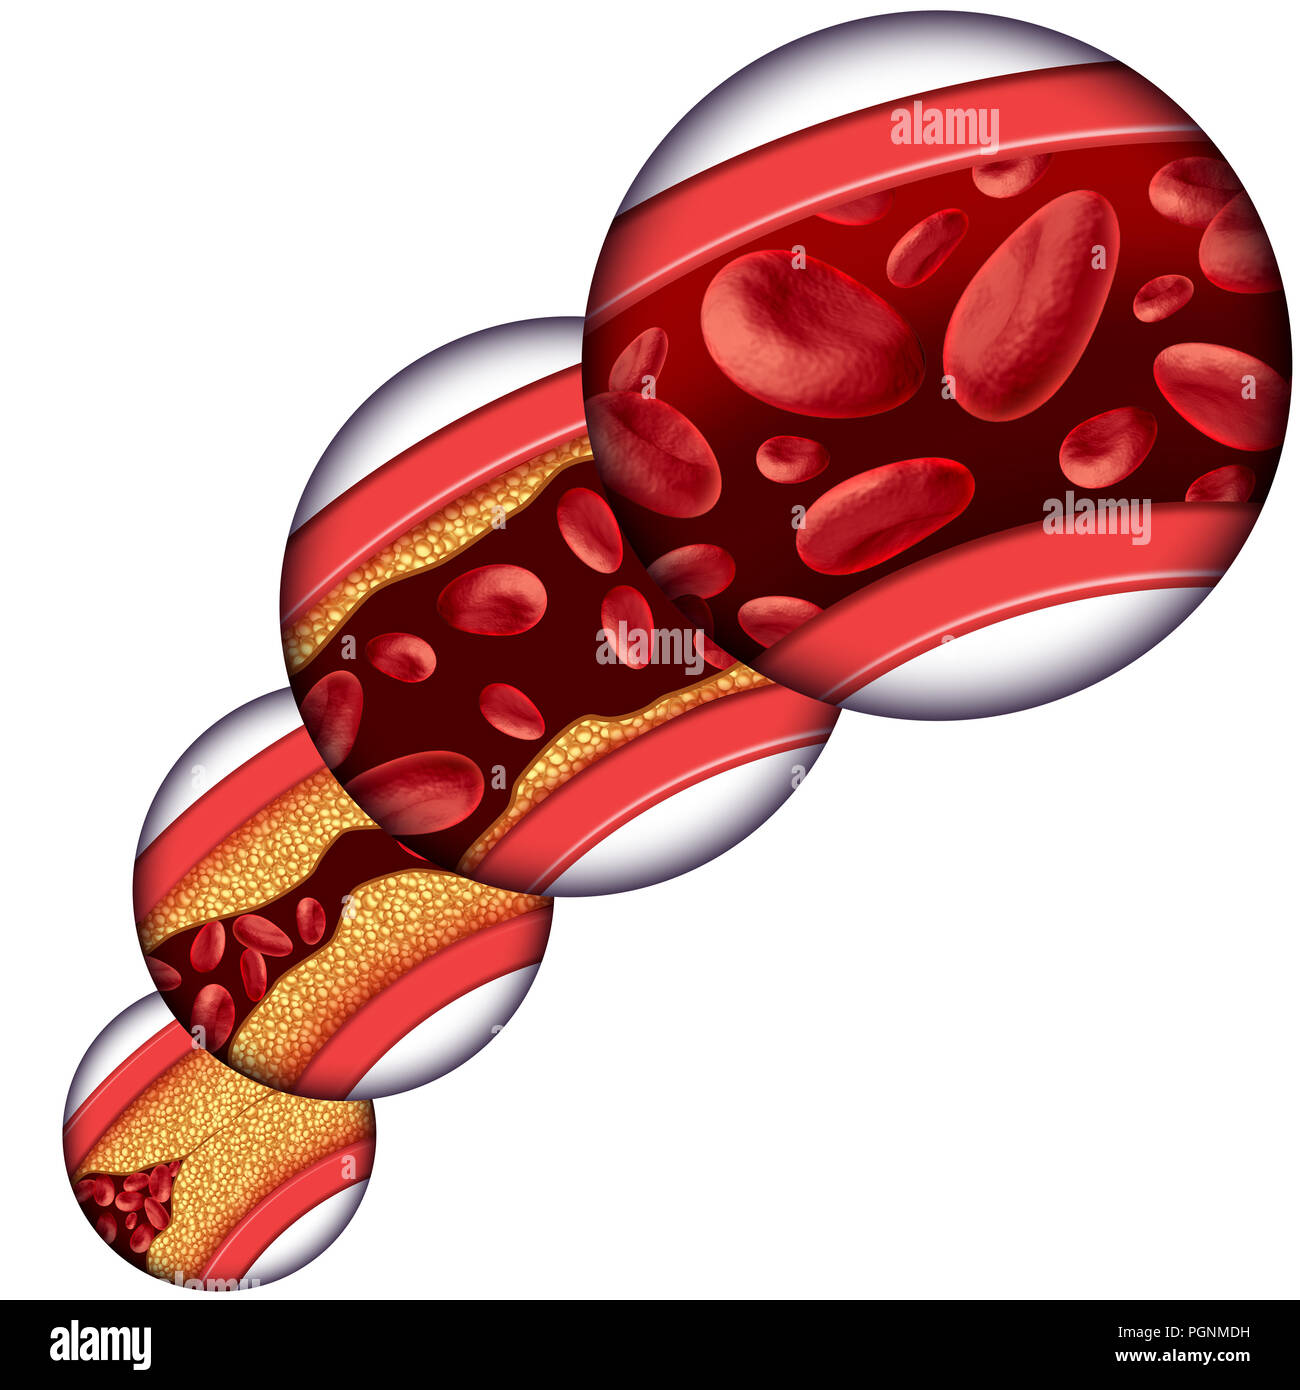 Coronary artery cholesterol therapy medical concept as a vein with gradual plaque removal from clogged arteries and atherosclerosis. - Stock Image